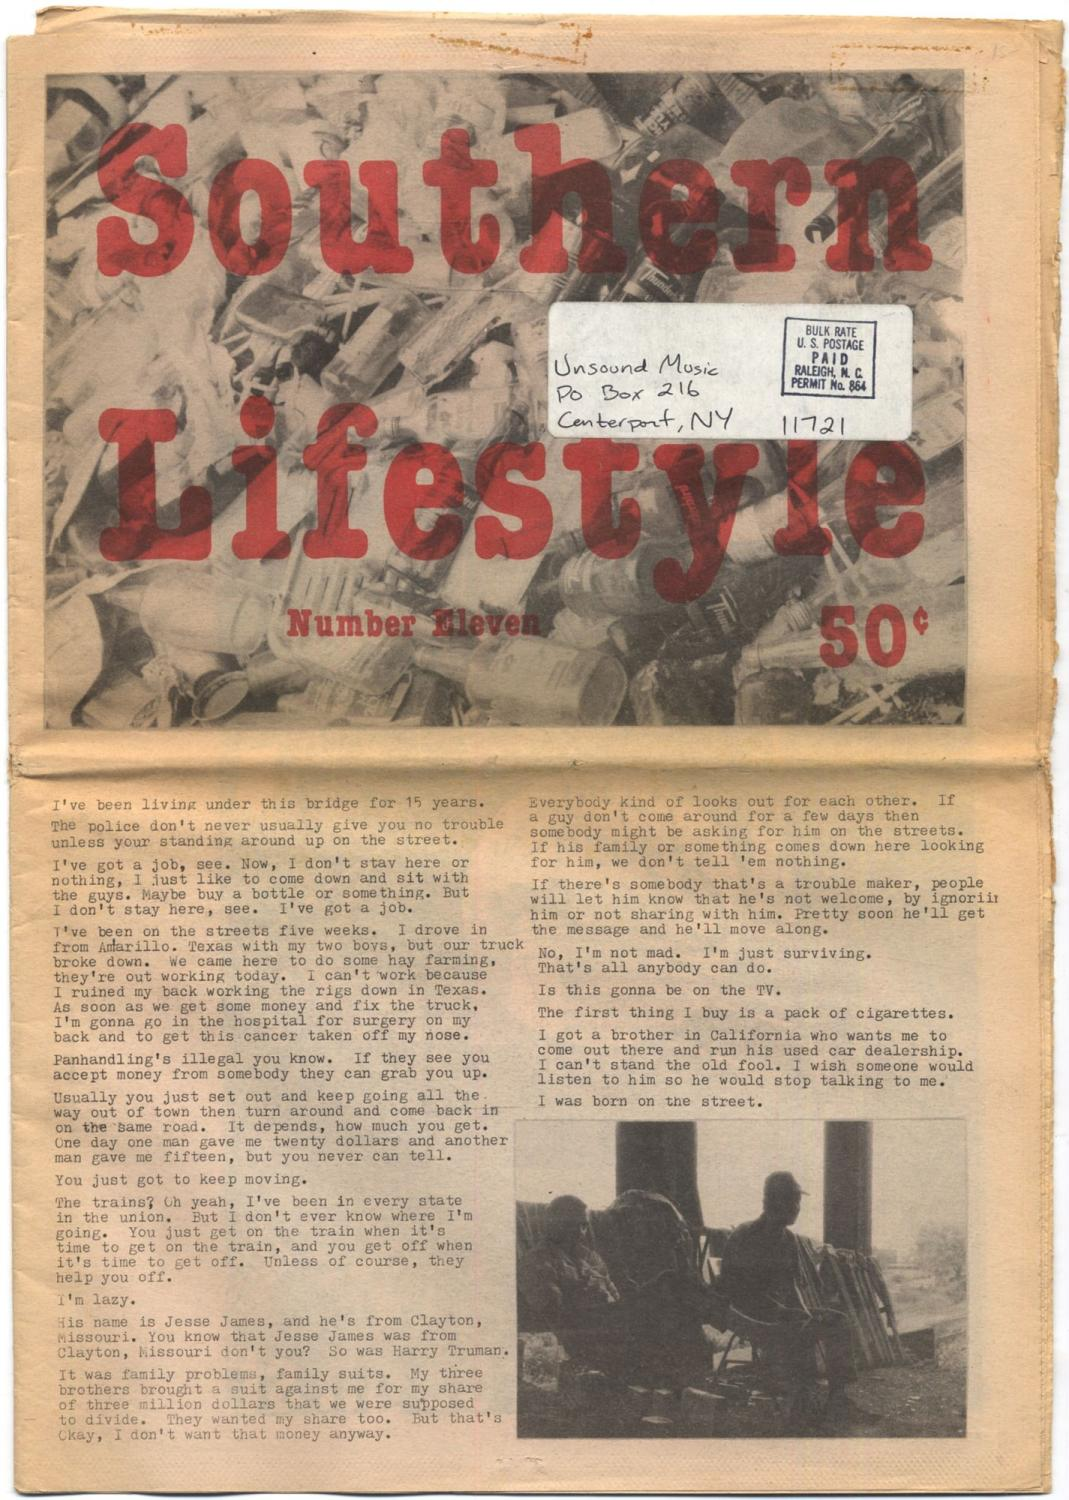 Southern Lifestyle Magazine - Number Eleven Near Fine Tabloid magazine. Newspaper wrappers. Near fine with some light wear at extremities. A sparse but interesting magazine including a interview with a da